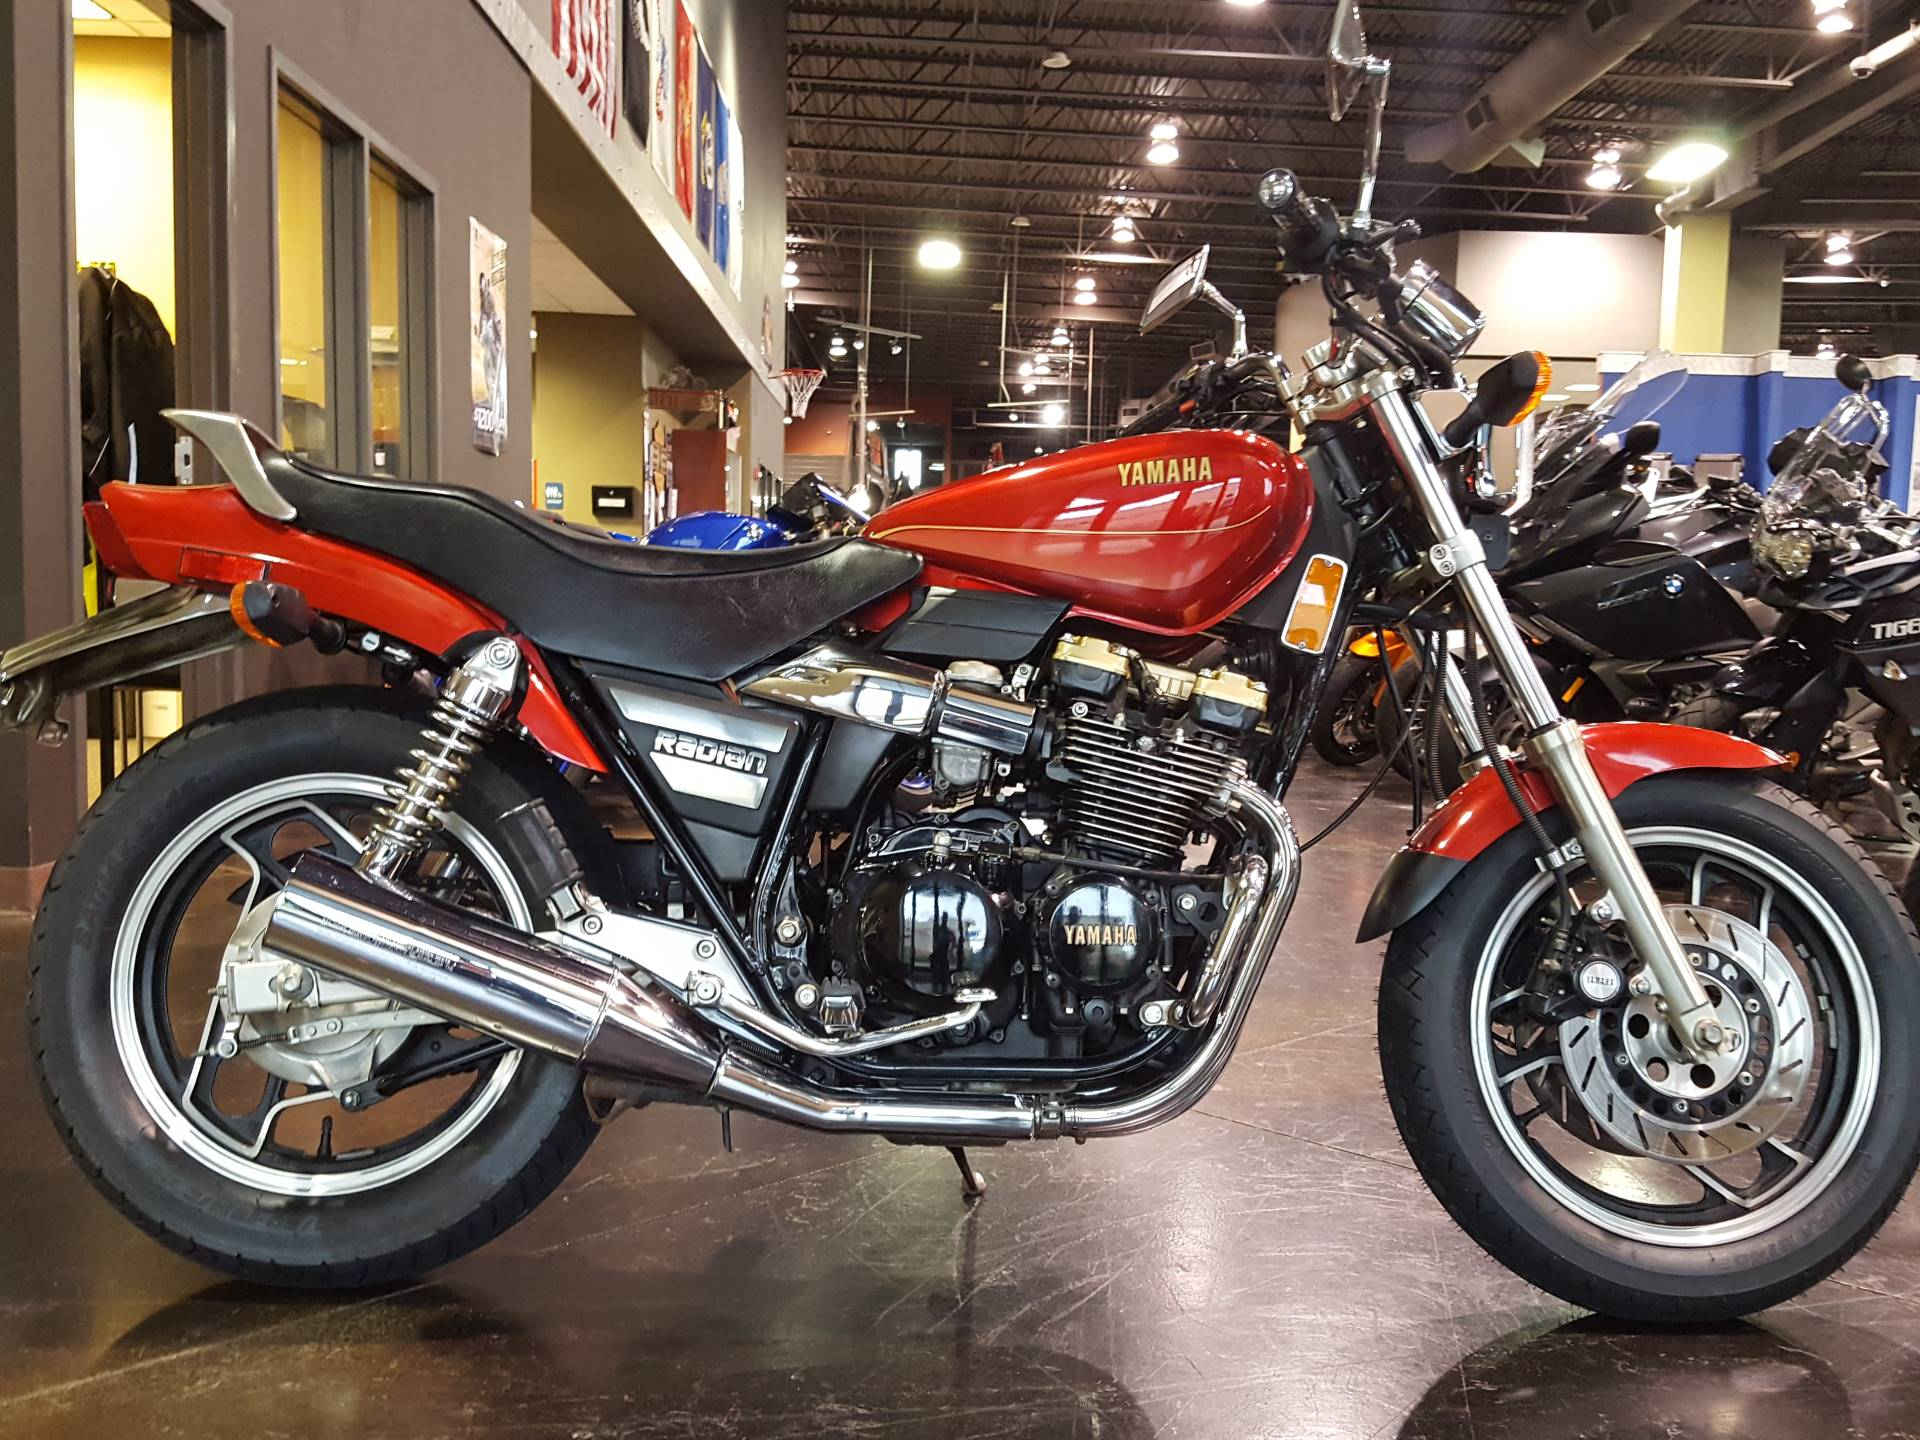 1986 Yamaha Radian Motorcycles for sale